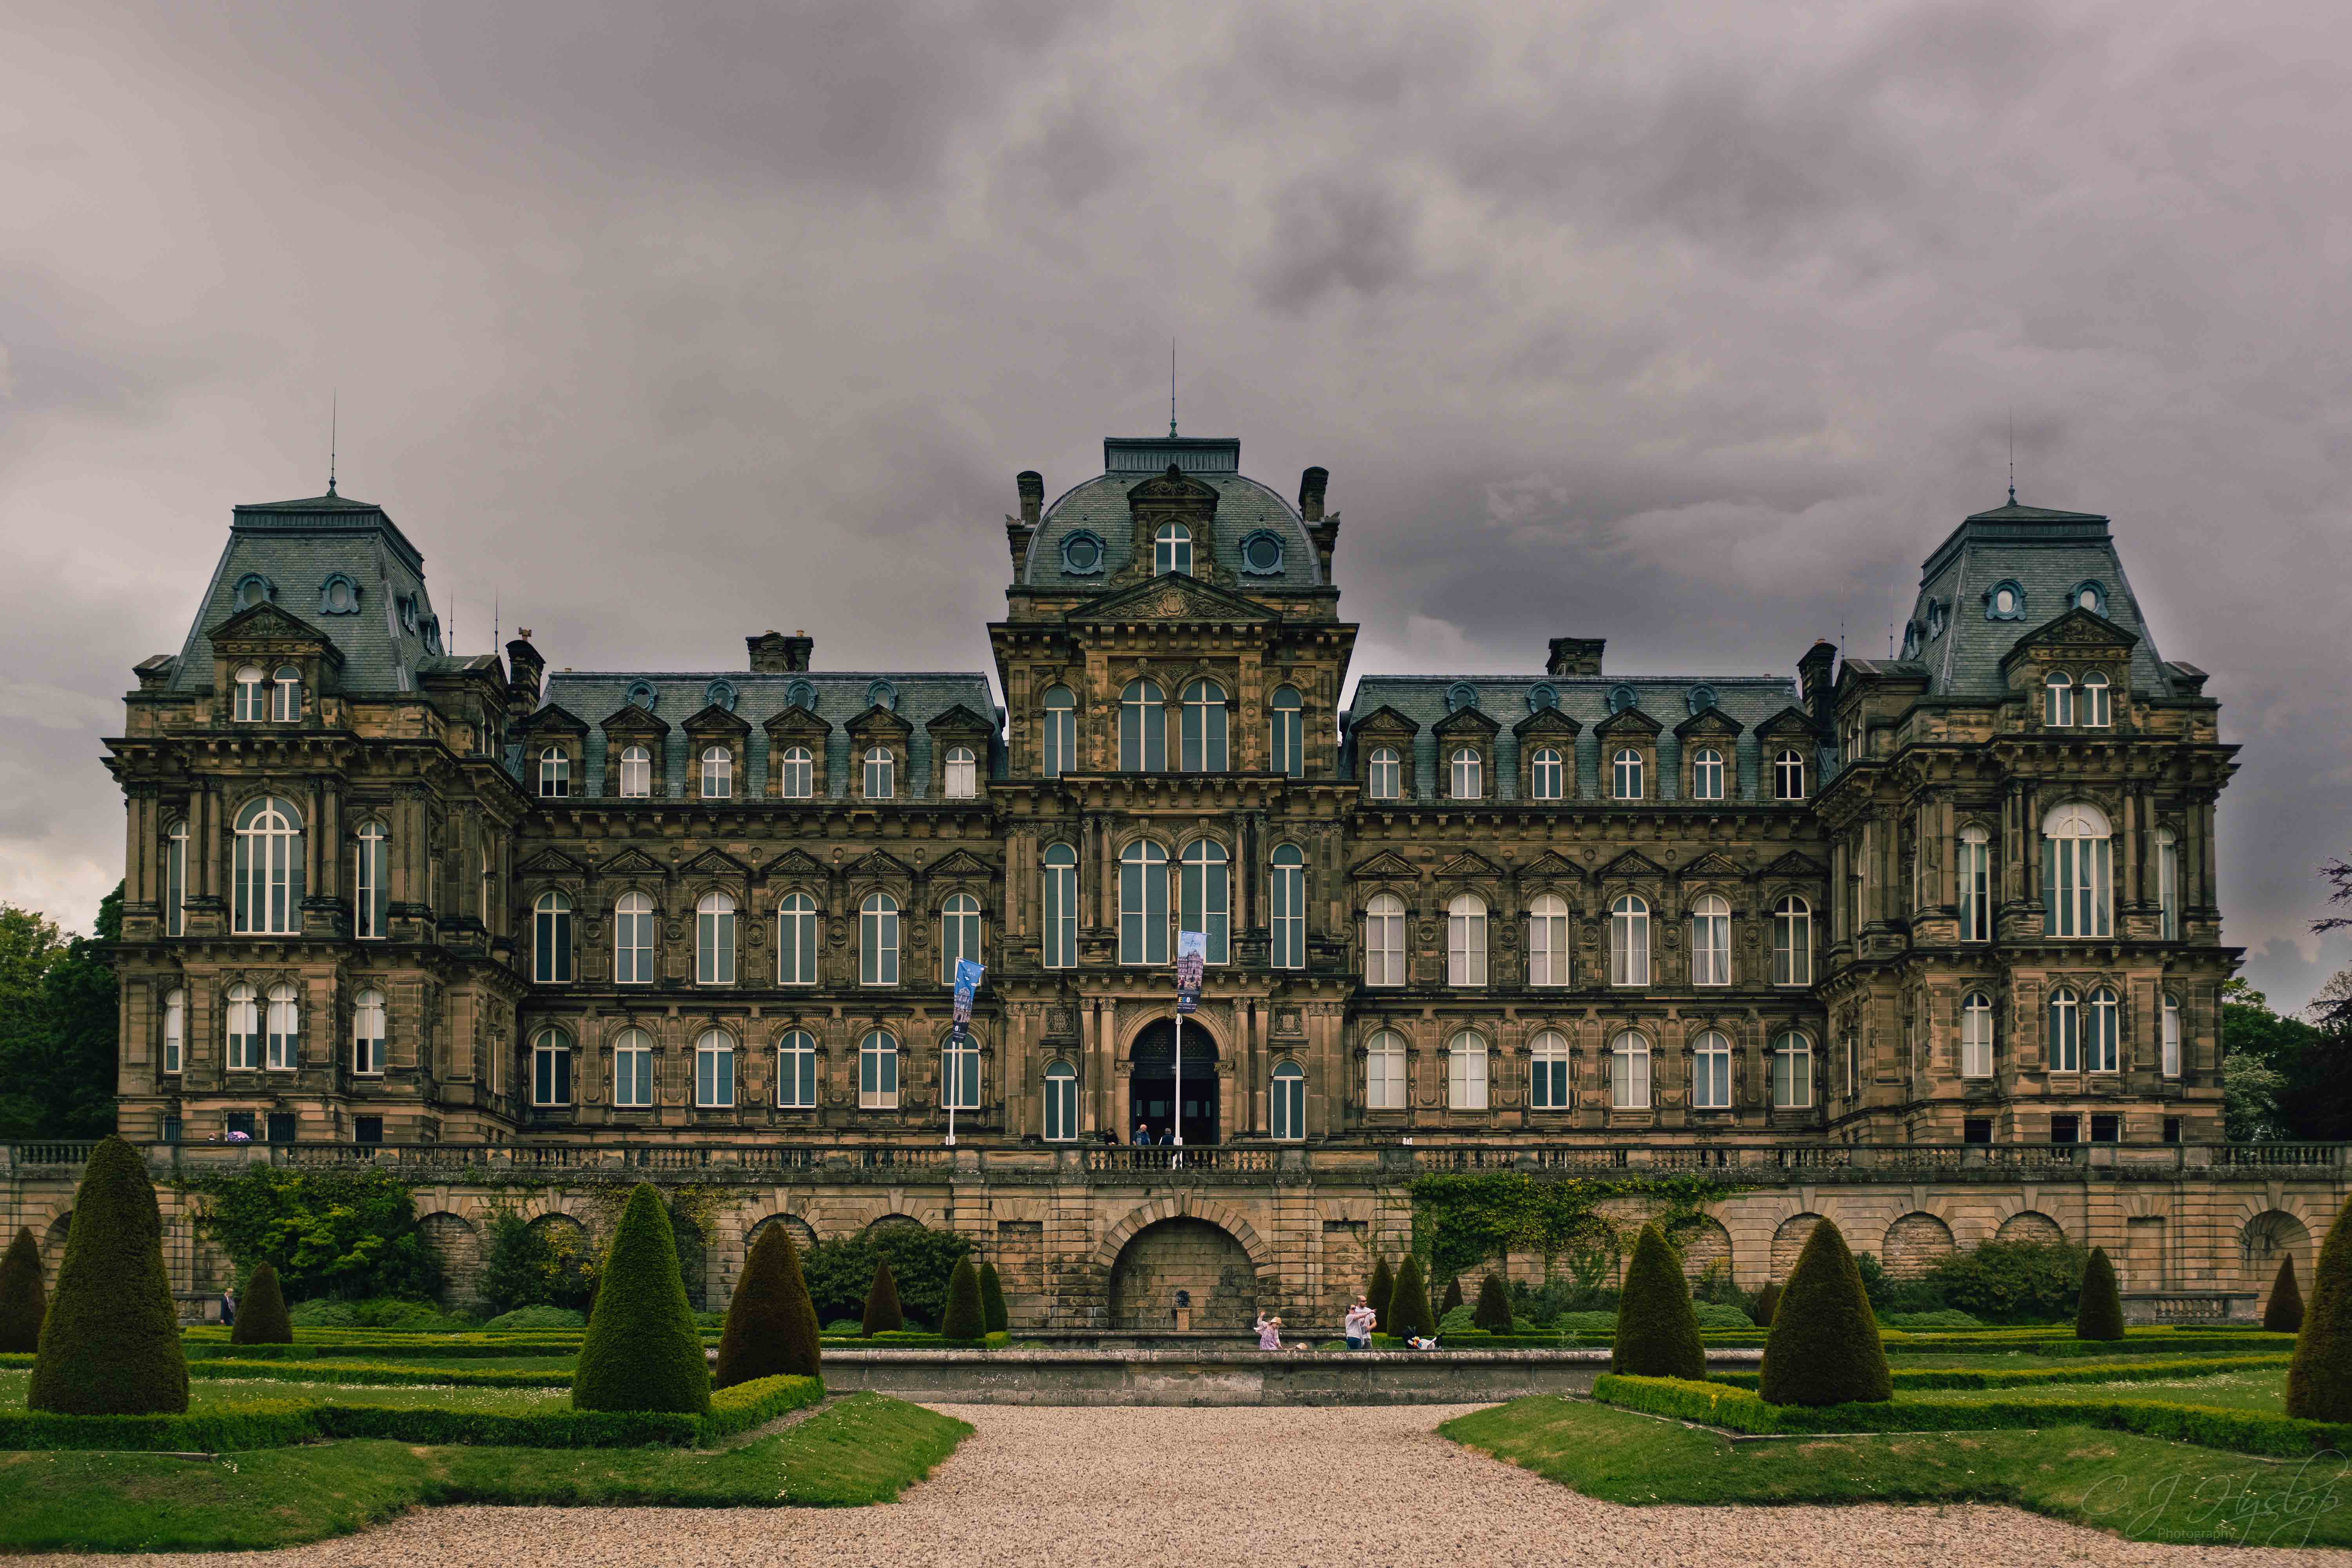 The Bowes Museum – May 2019